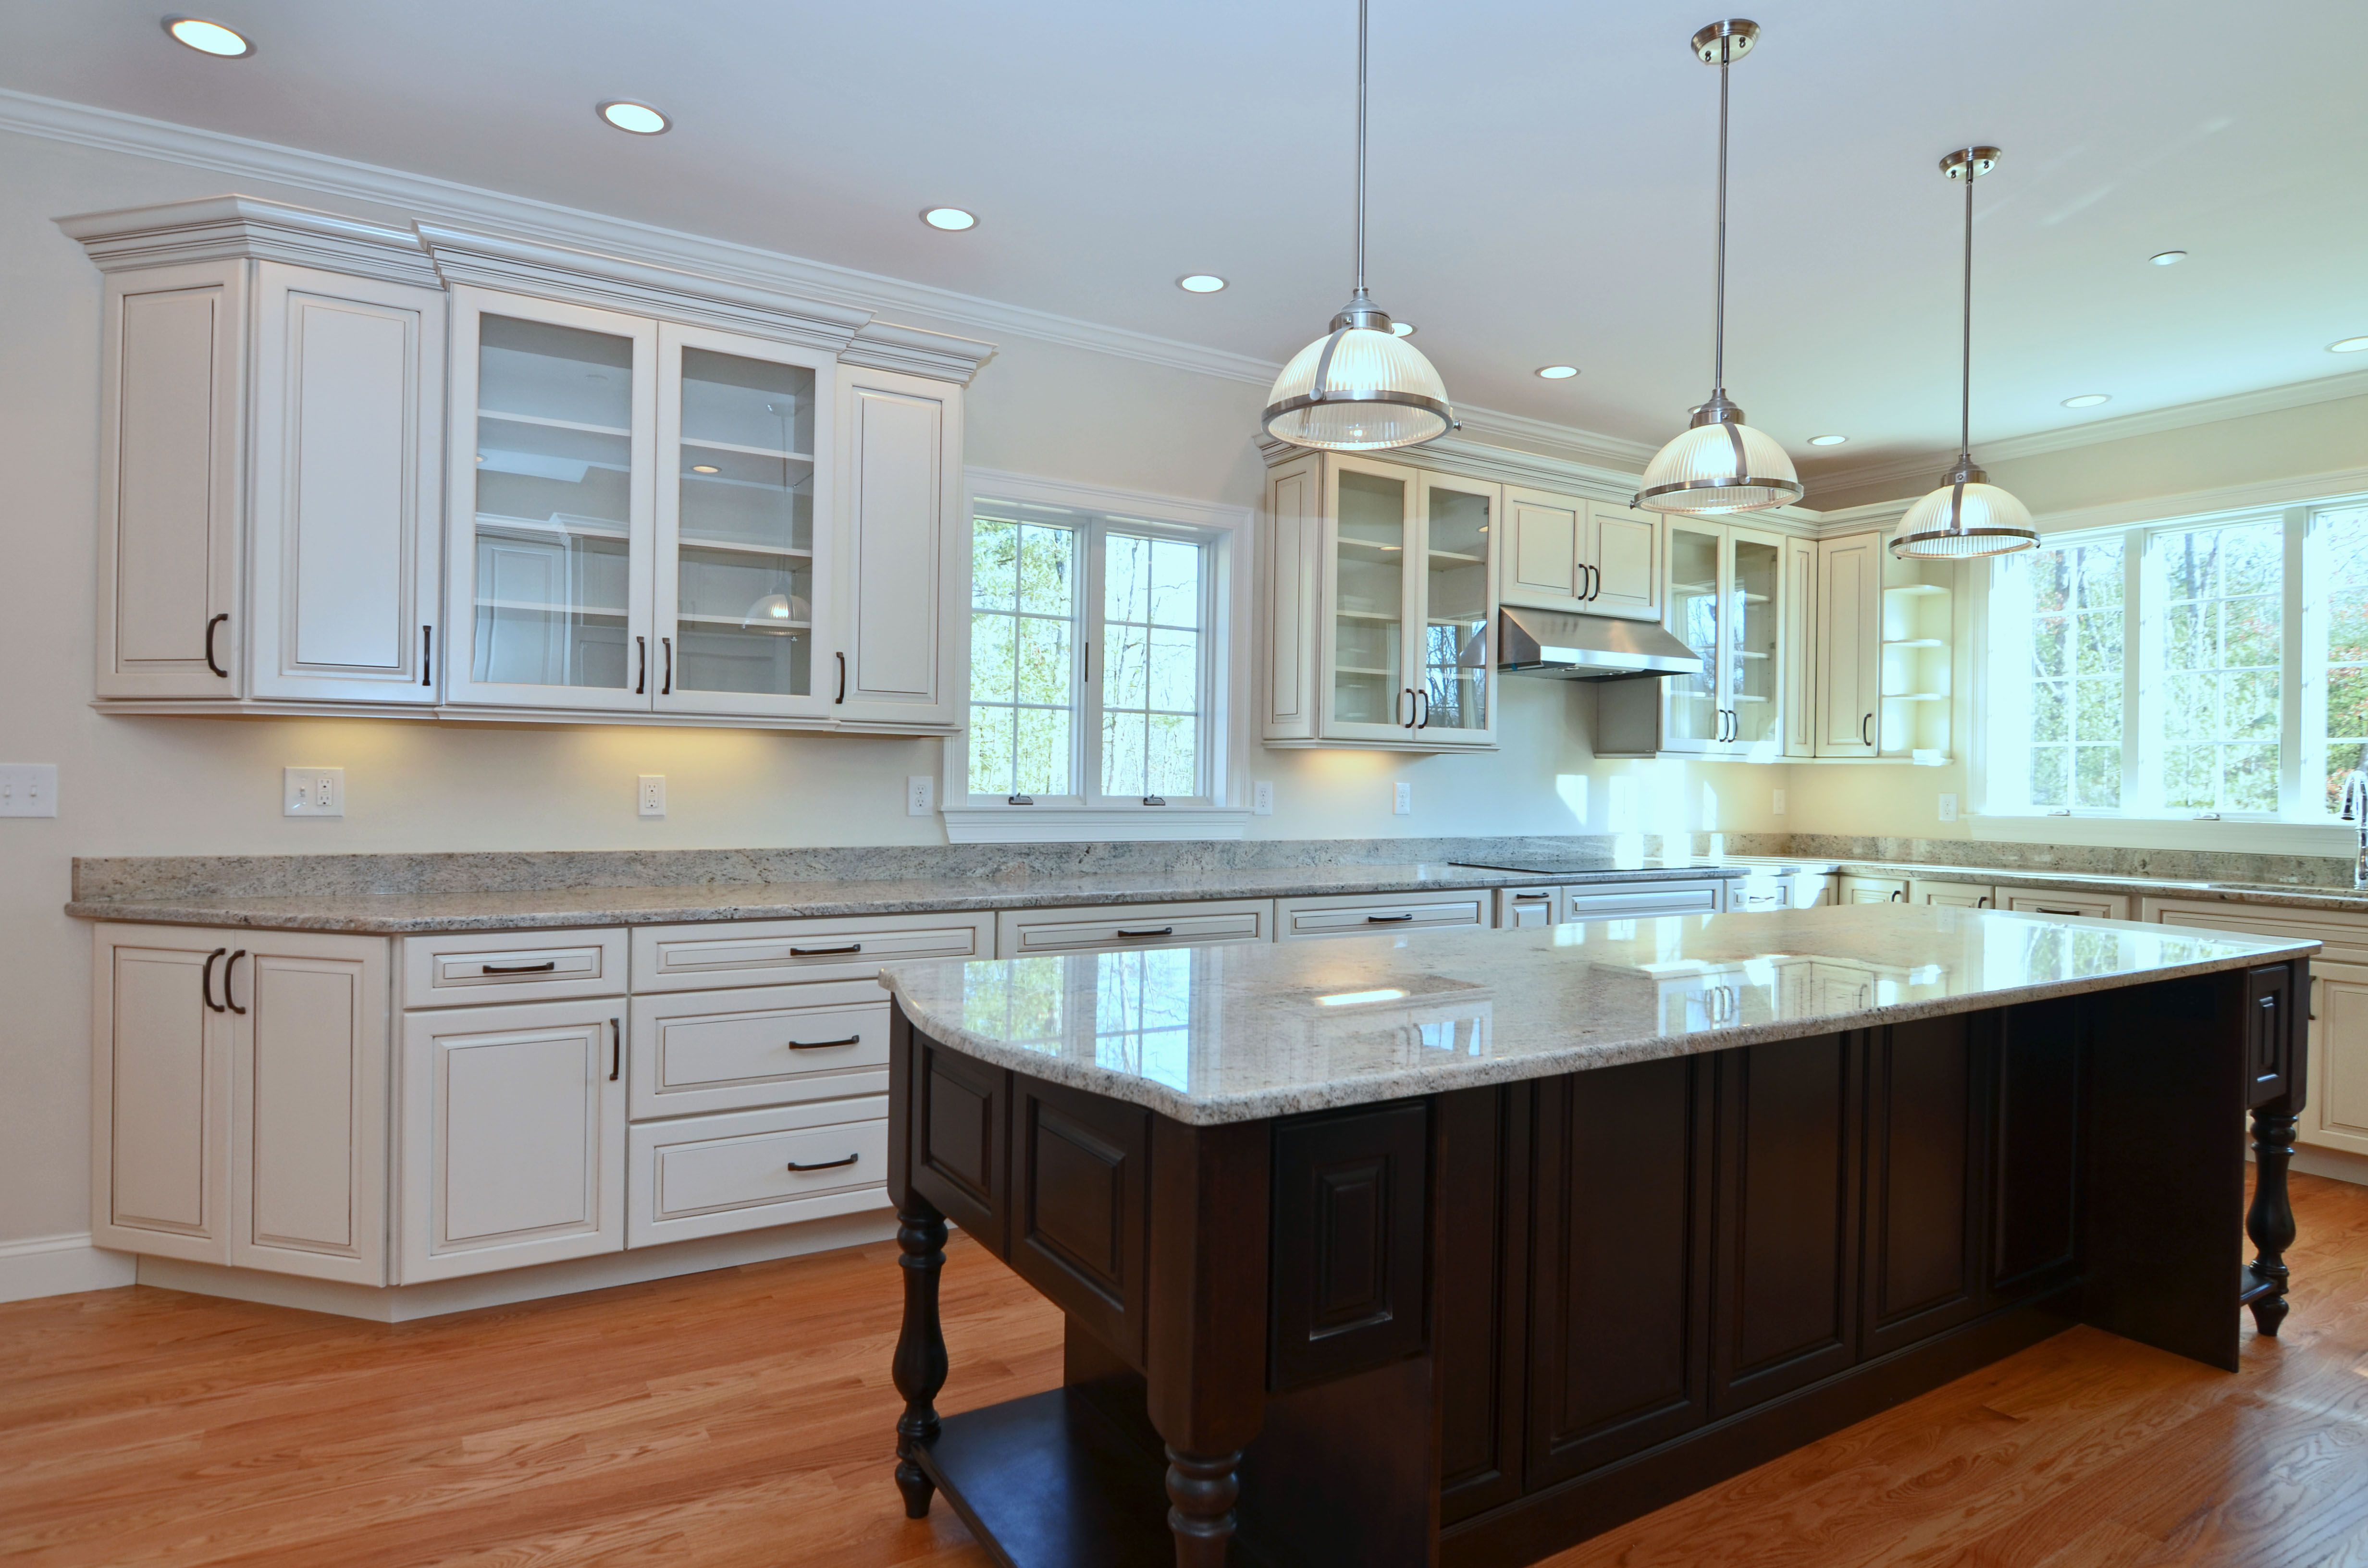 KraftMaid cabinets with Maple wood with Canvas paint. They ...